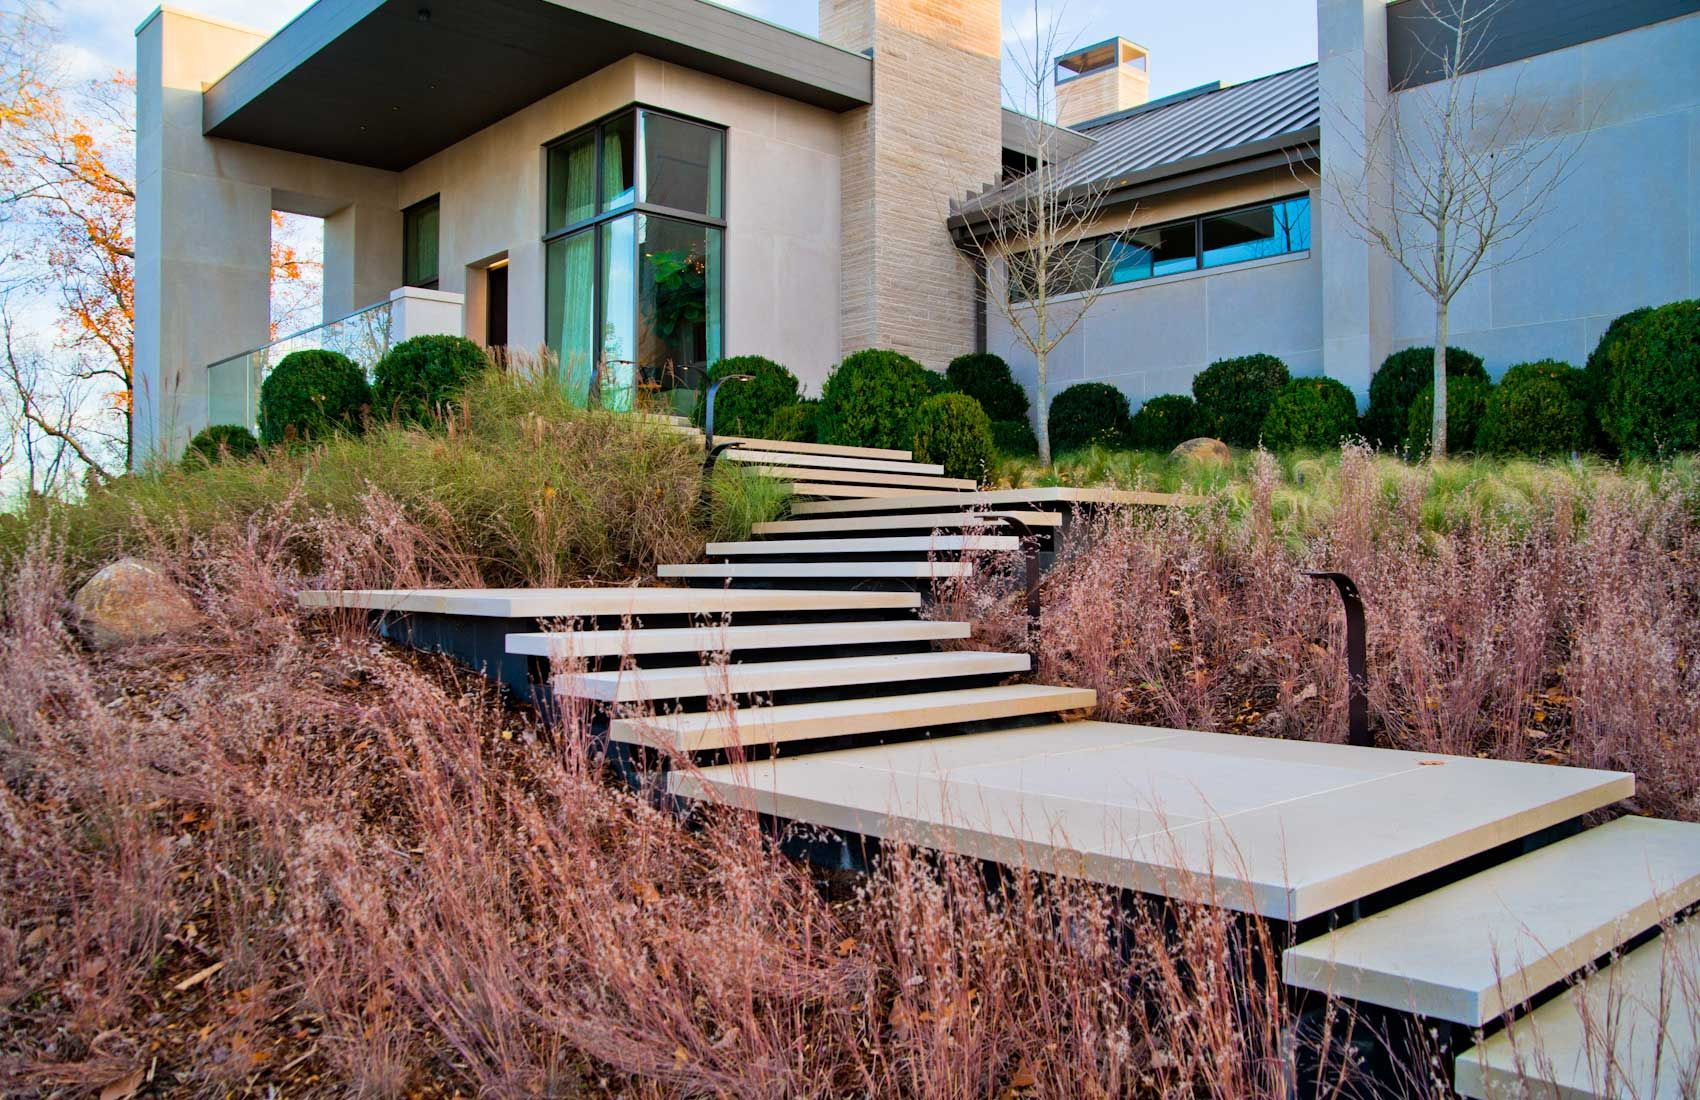 Recently published on the front page of World Landscape Architecture ...